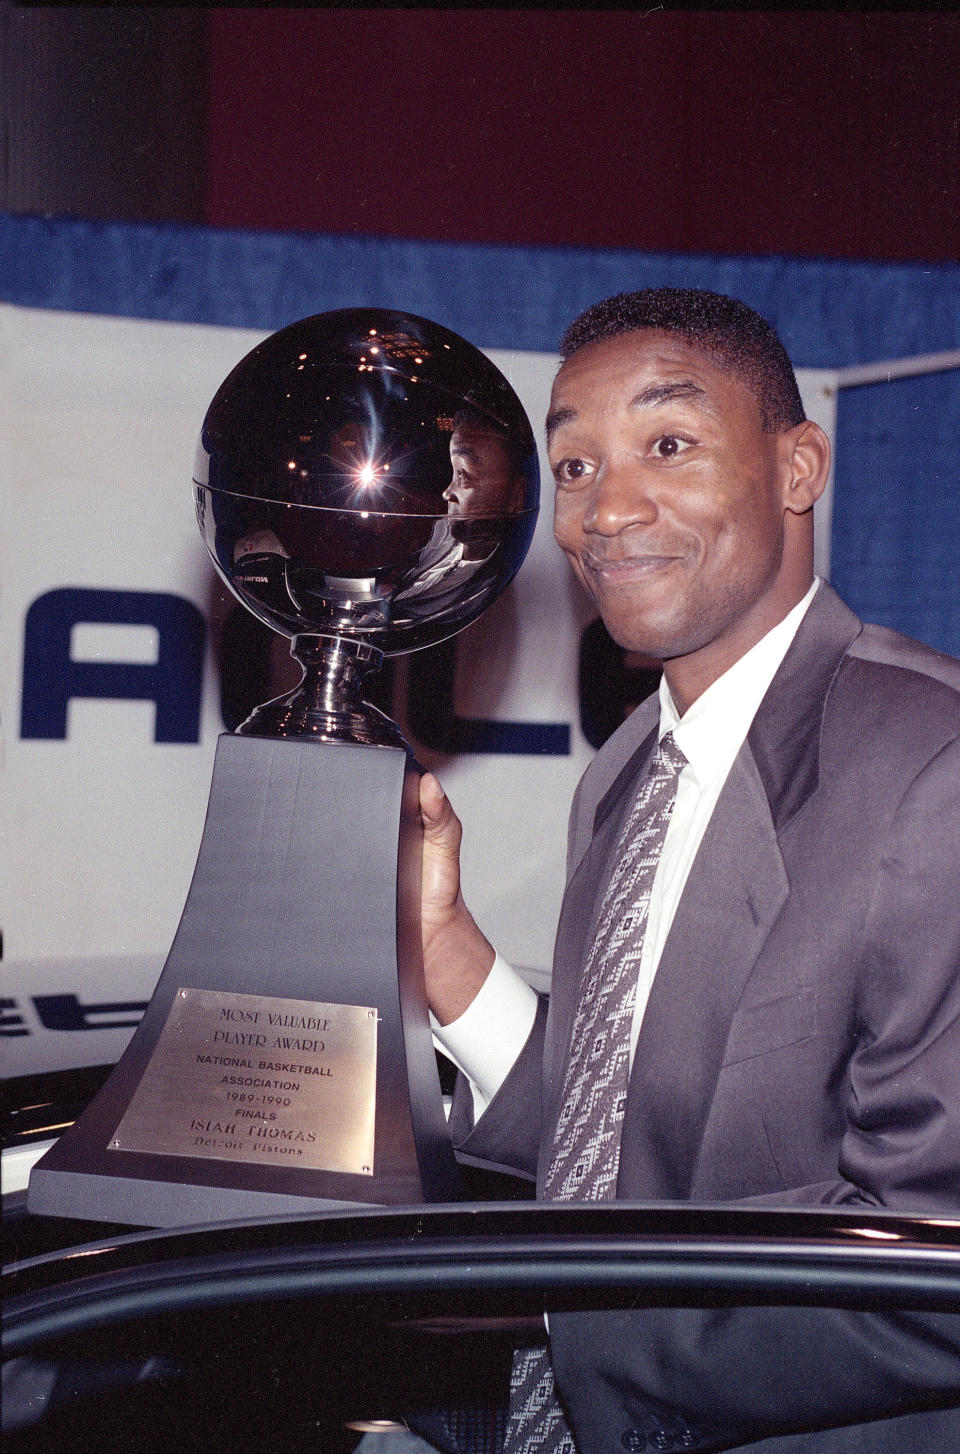 FILE - In this June 20, 1990, filer photo, Detroit Pistons guard and captain Isiah Thomas holds the 1990 NBA Finals Most Valuable Player trophy presented to him during ceremonies in New York. Thomas was famously left off the U.S. Olympic team — the first Dream Team — that won a gold medal at the 1992 Barcelona Olympics with ease. But he could have been an Olympian 12 years earlier, had the Americans not boycotted the 1980 Moscow Games. (AP Photo/Richard Drew, Filer)